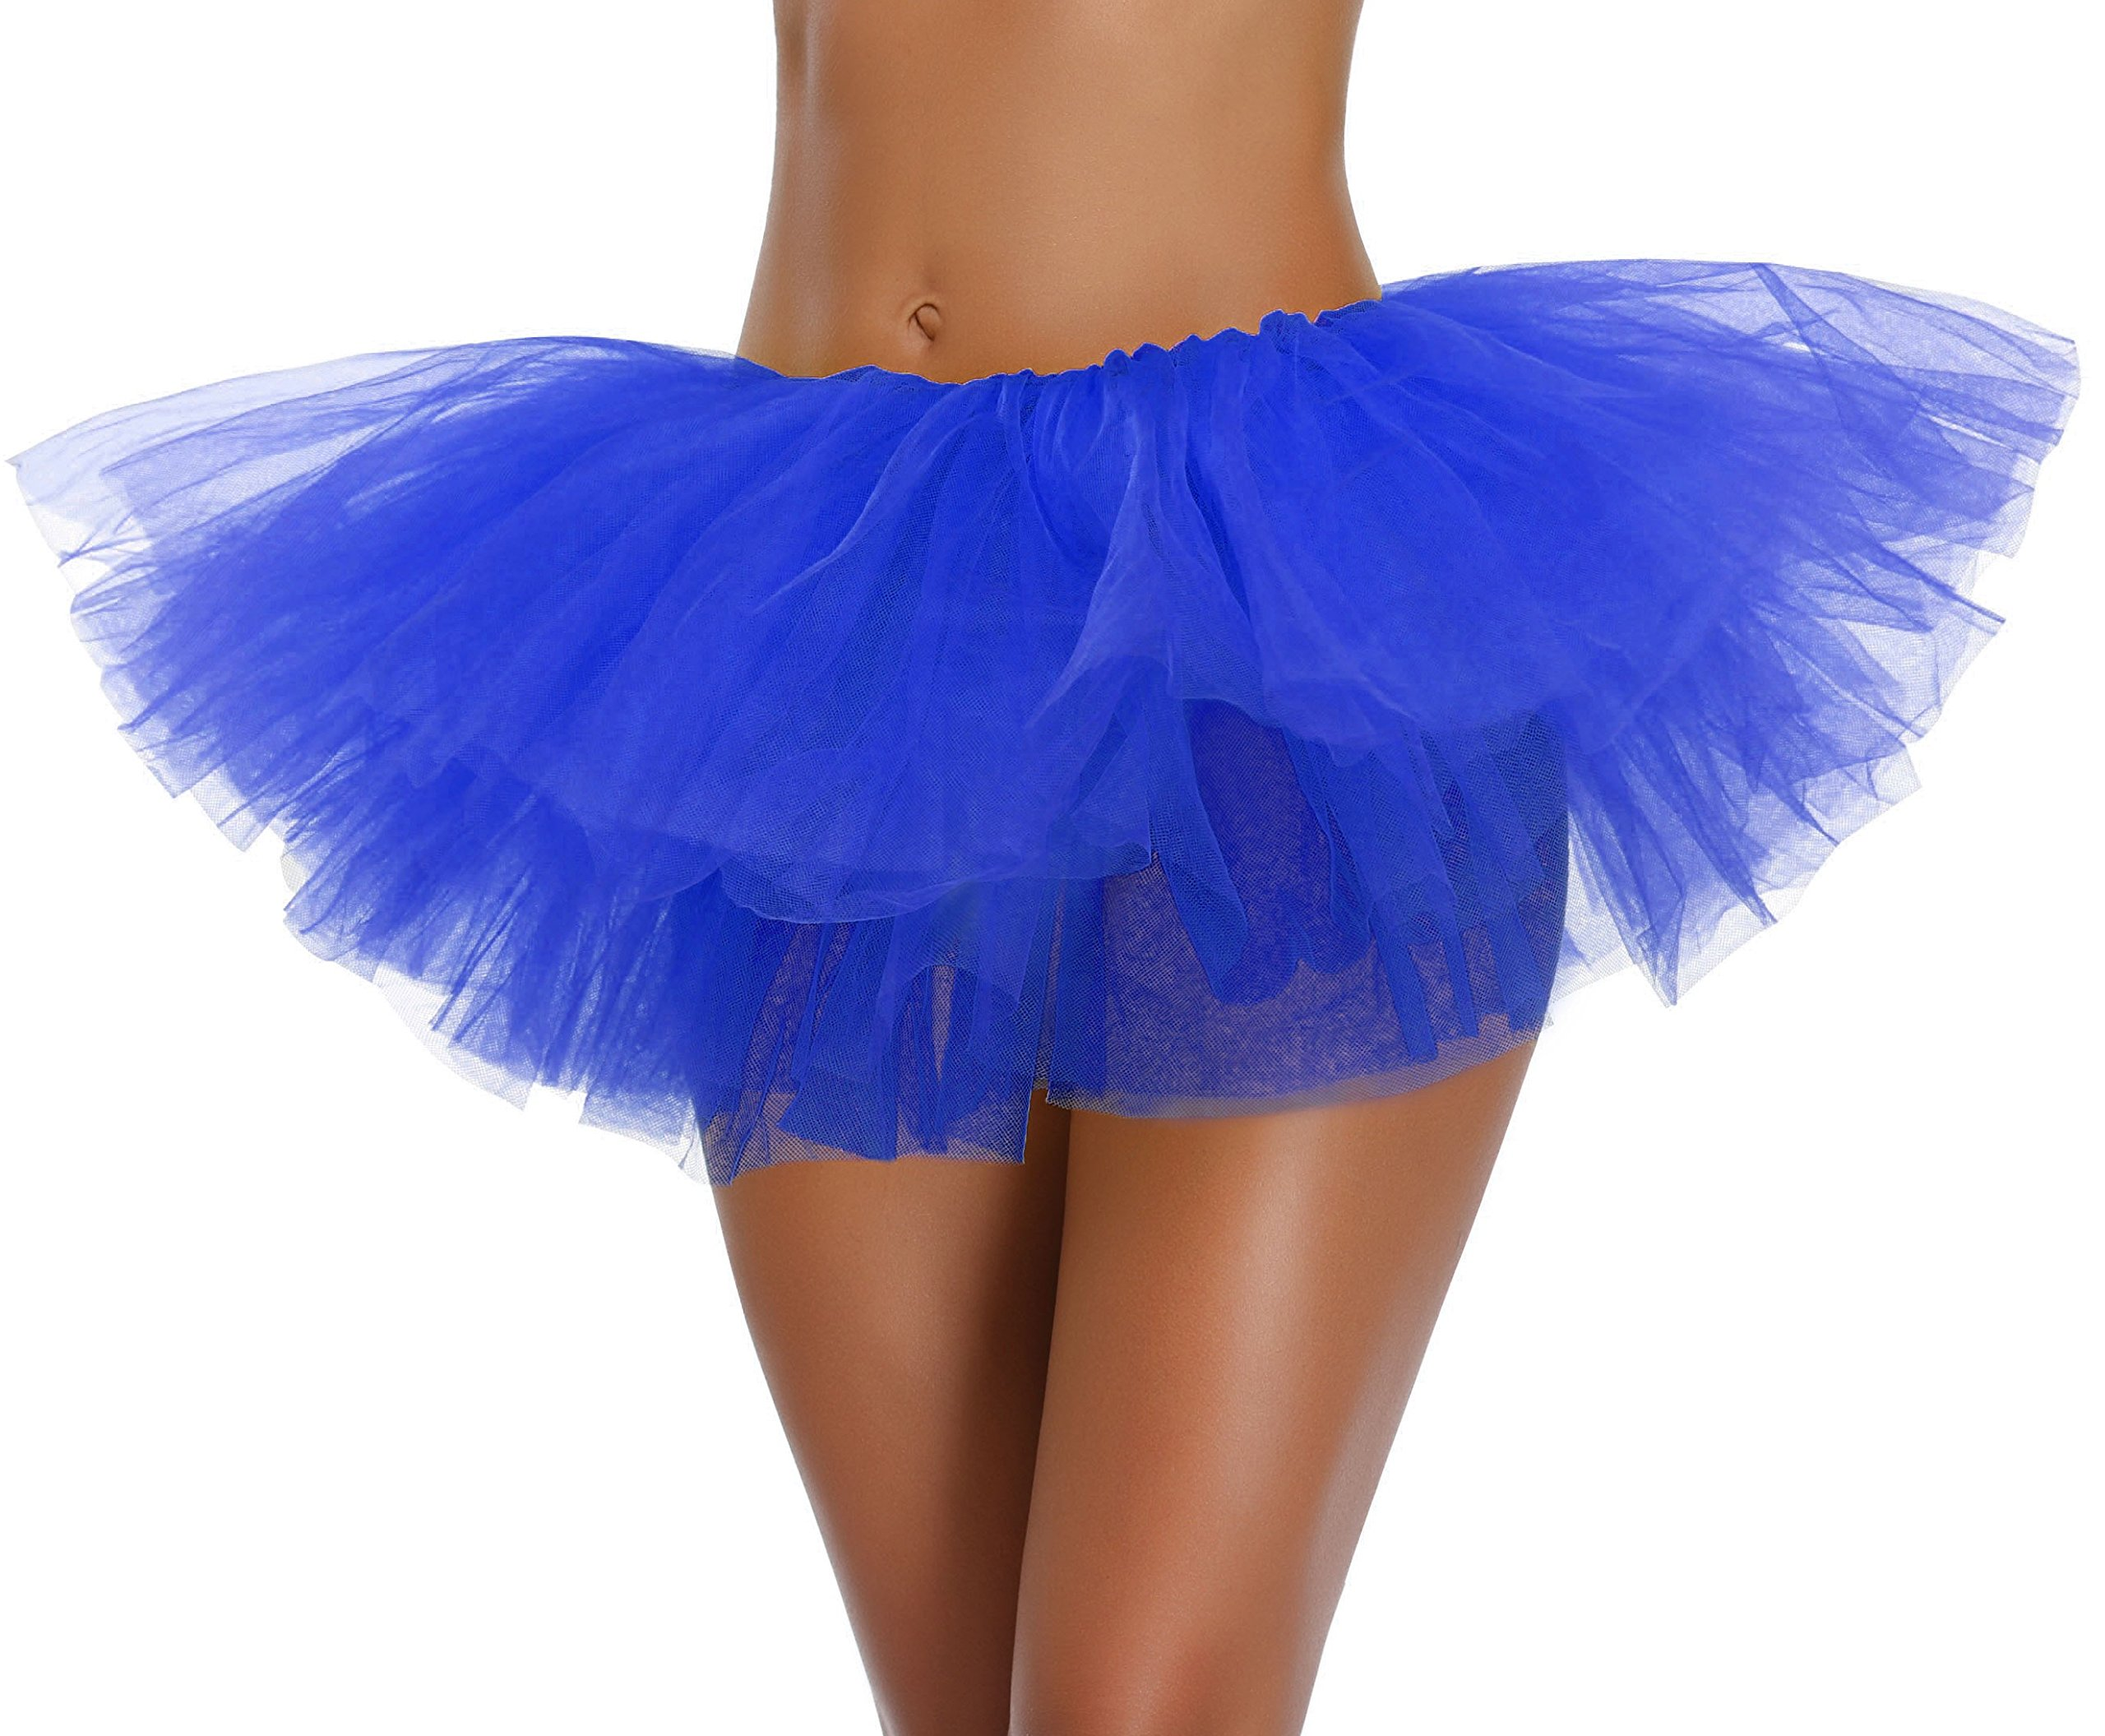 Women's, Teen, Adult Classic Elastic 3, 4, 5 Layered Tulle Tutu Skirt (One Size, Blue 5Layer)